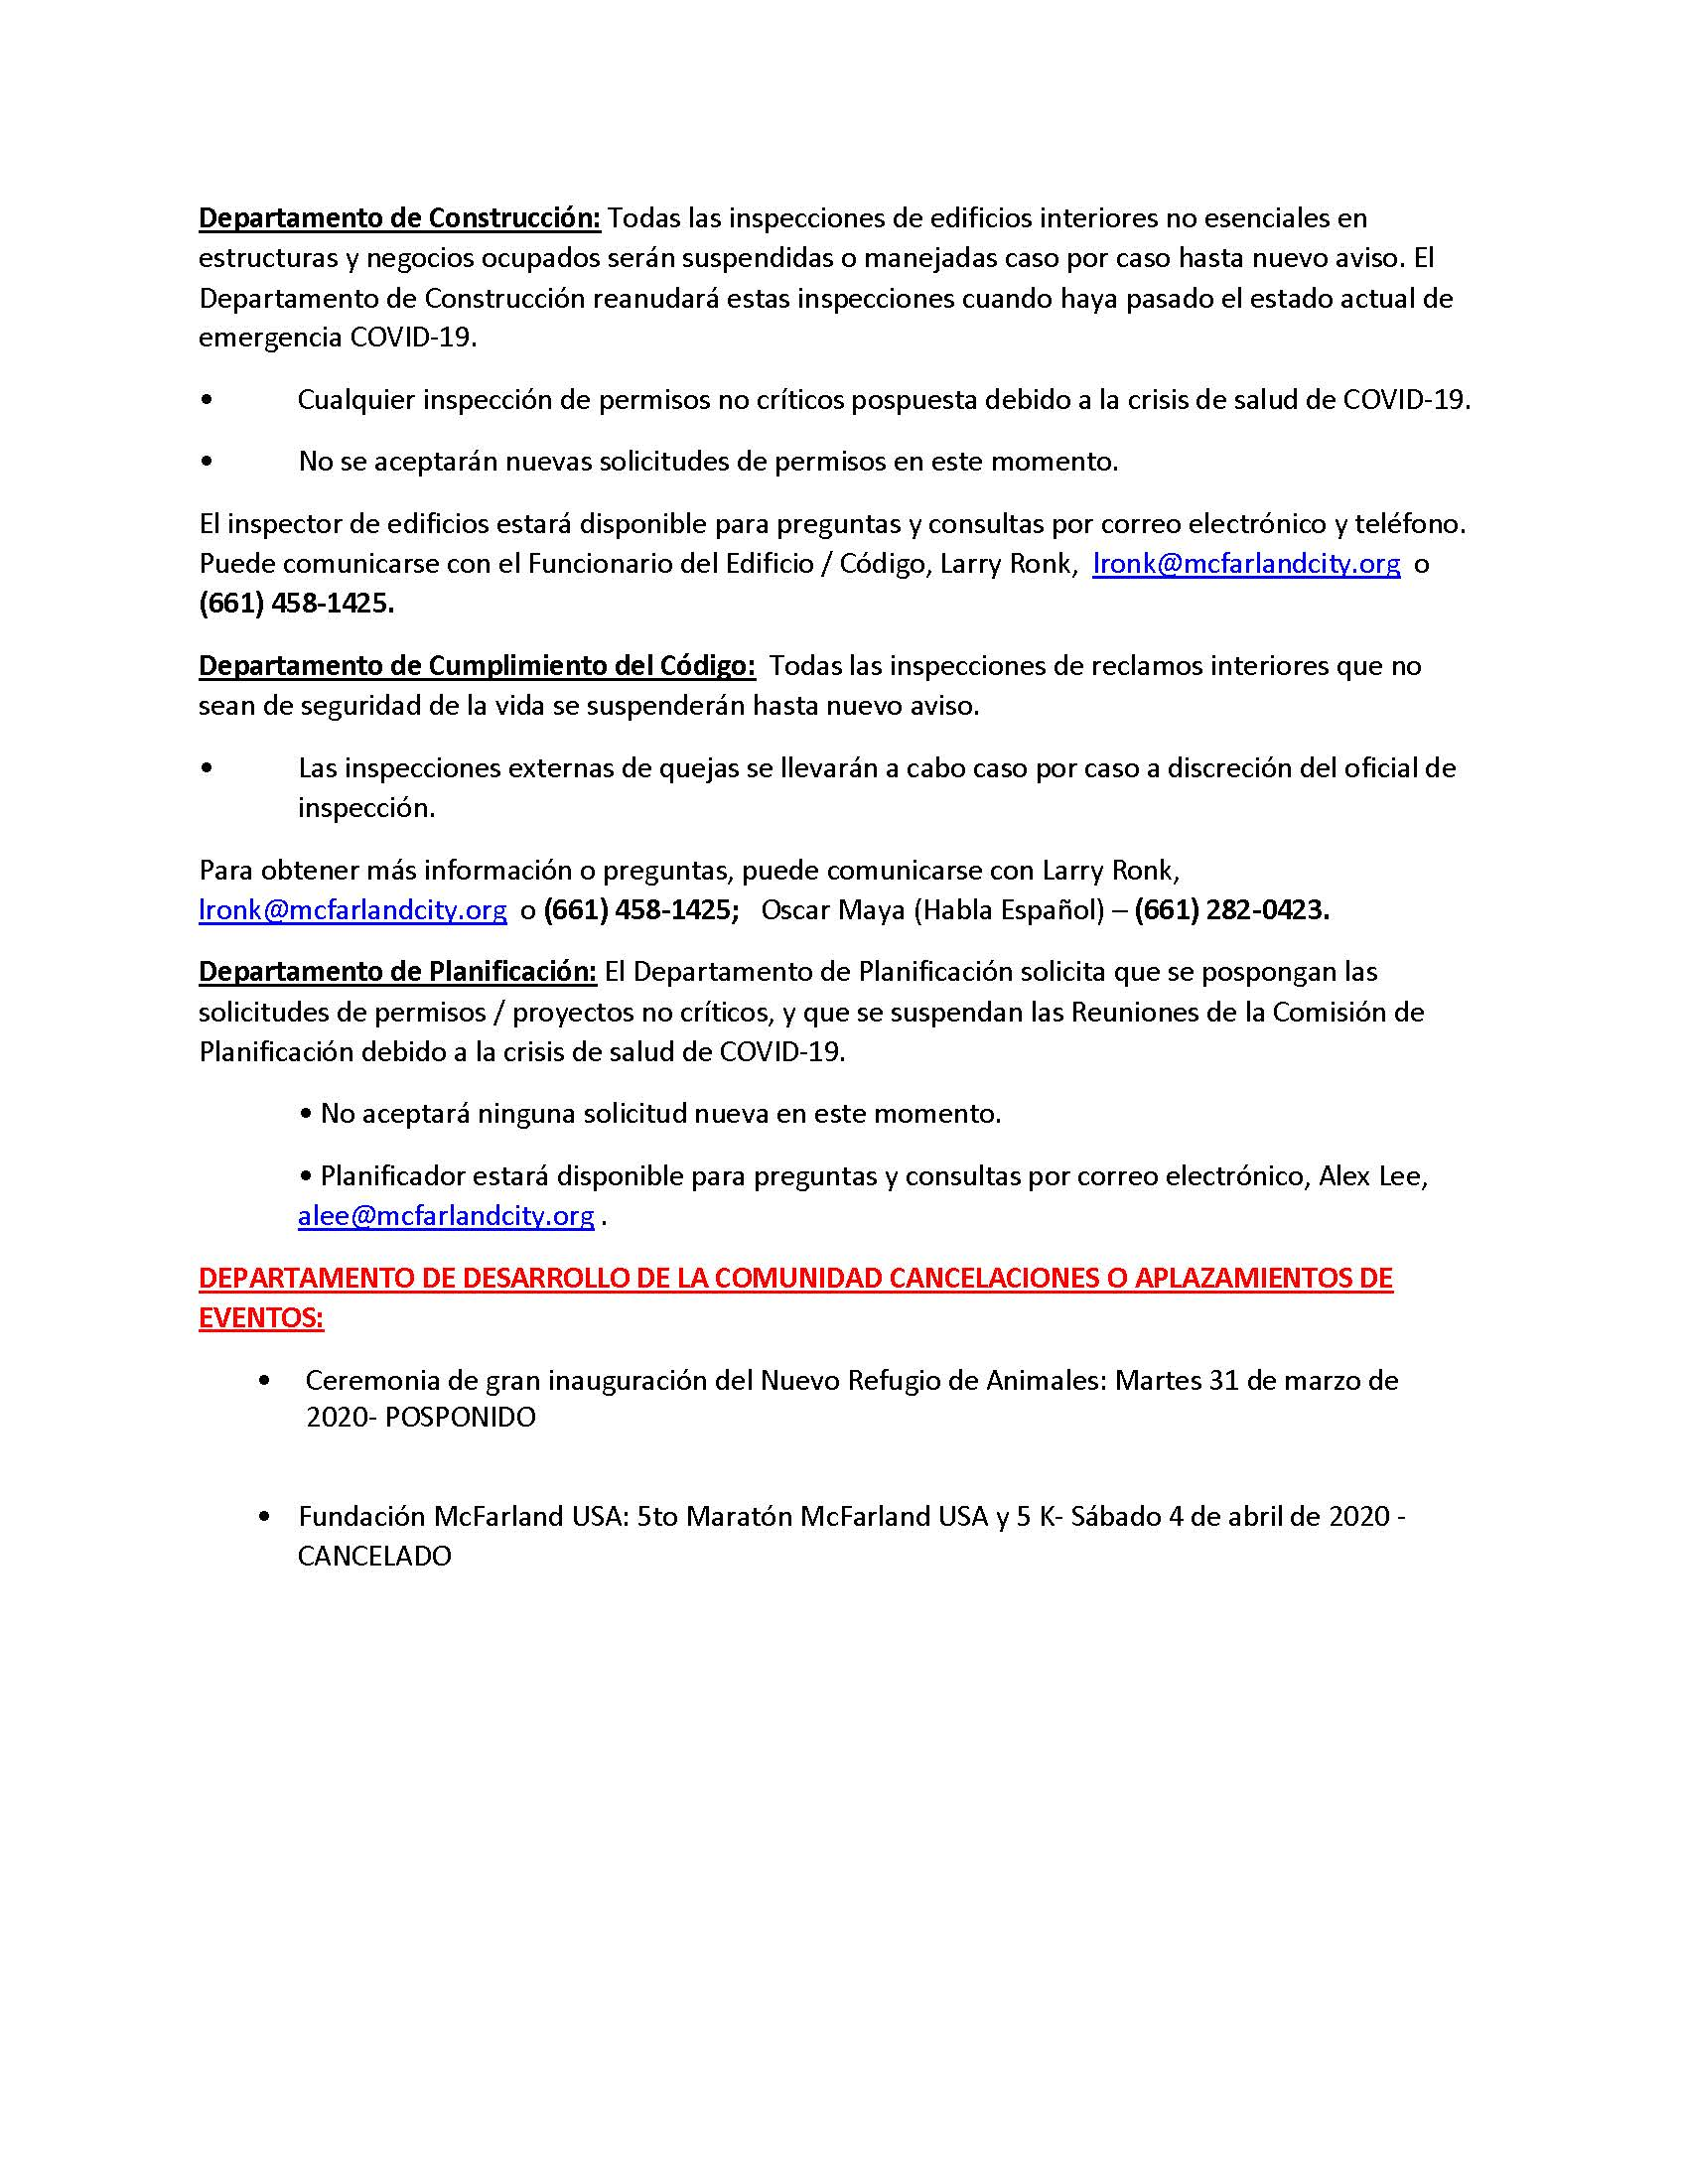 City of McFarland_CDD_COVID-19 Response_Spanish_Page_2